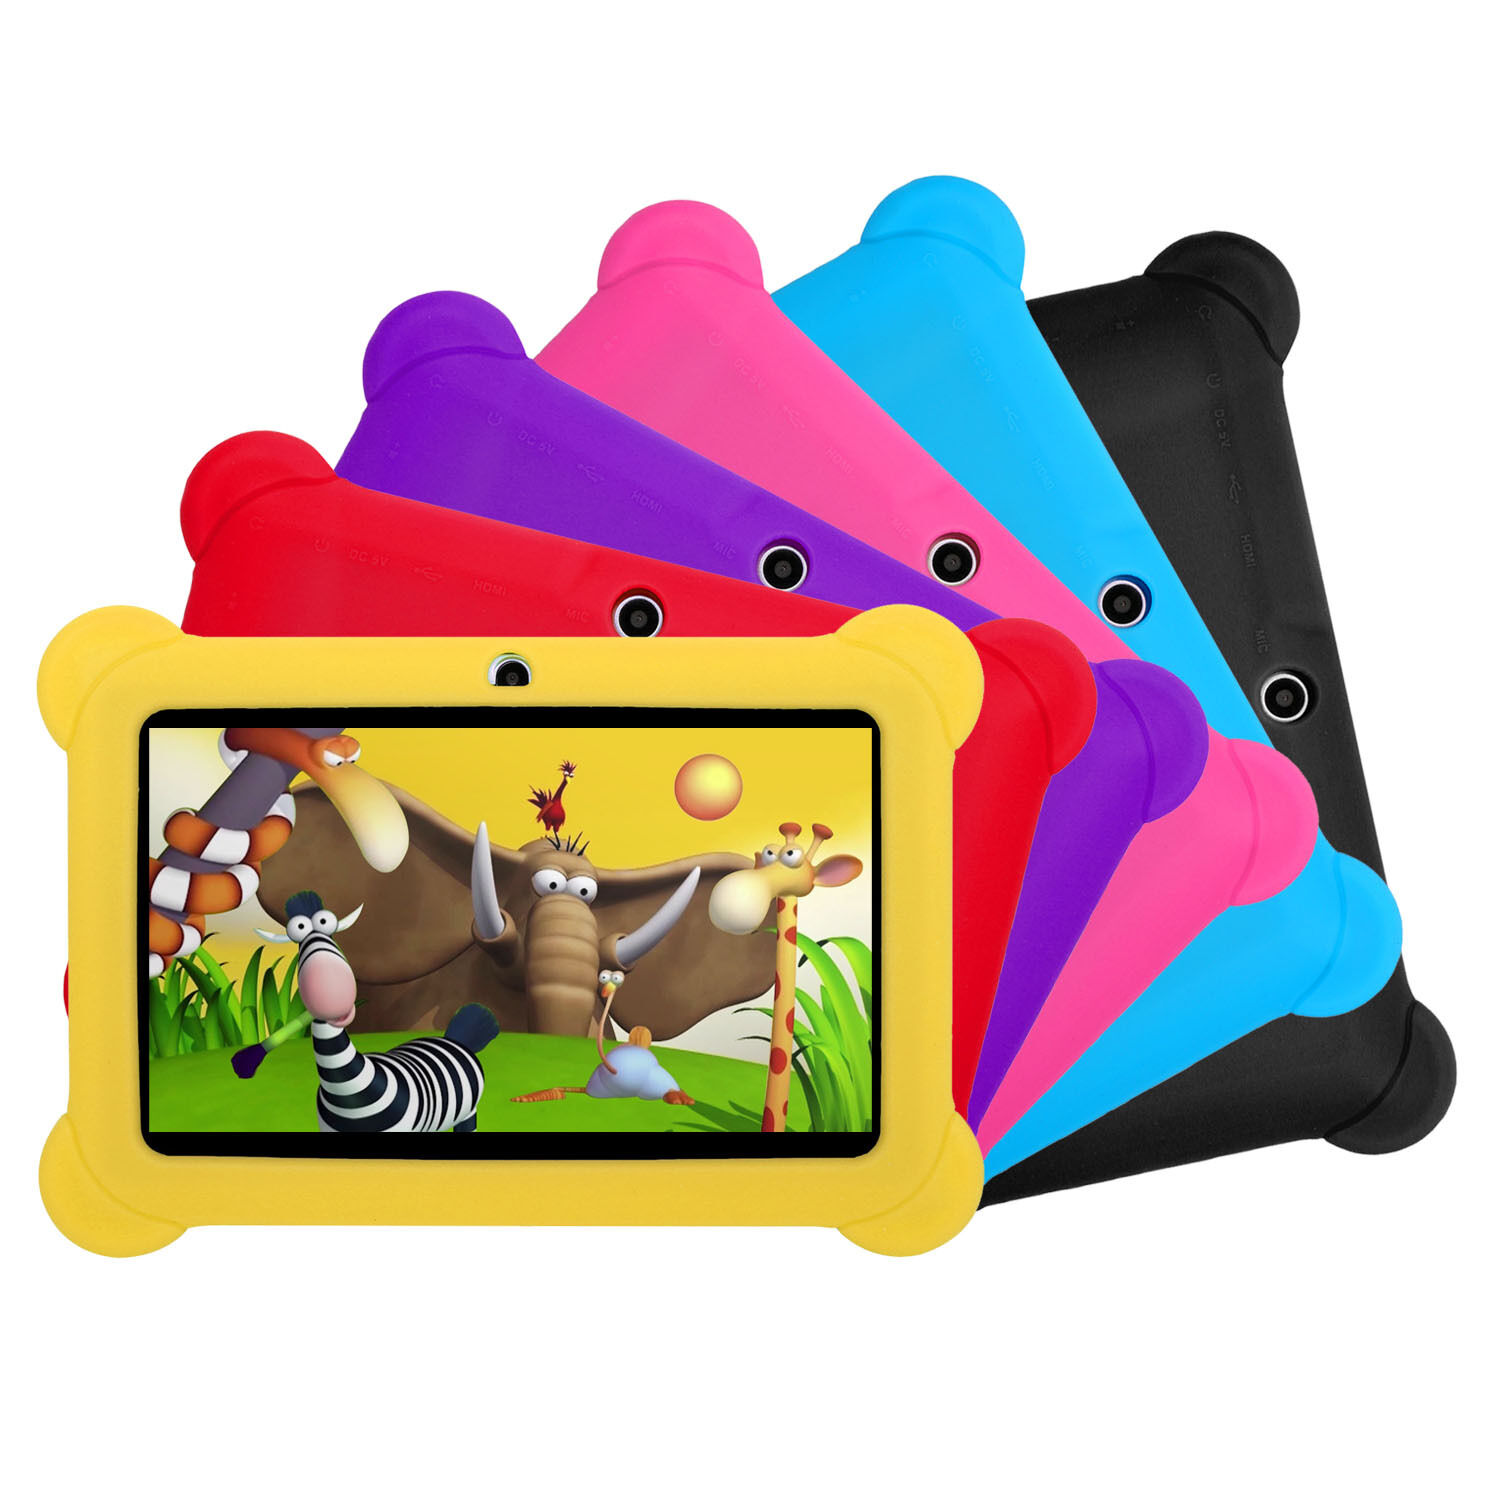 "Kids Tablet PC 7"" Android Quad Core Dual Camera 1.3Ghz 8GB WIFI Bonus Xmas Gift"